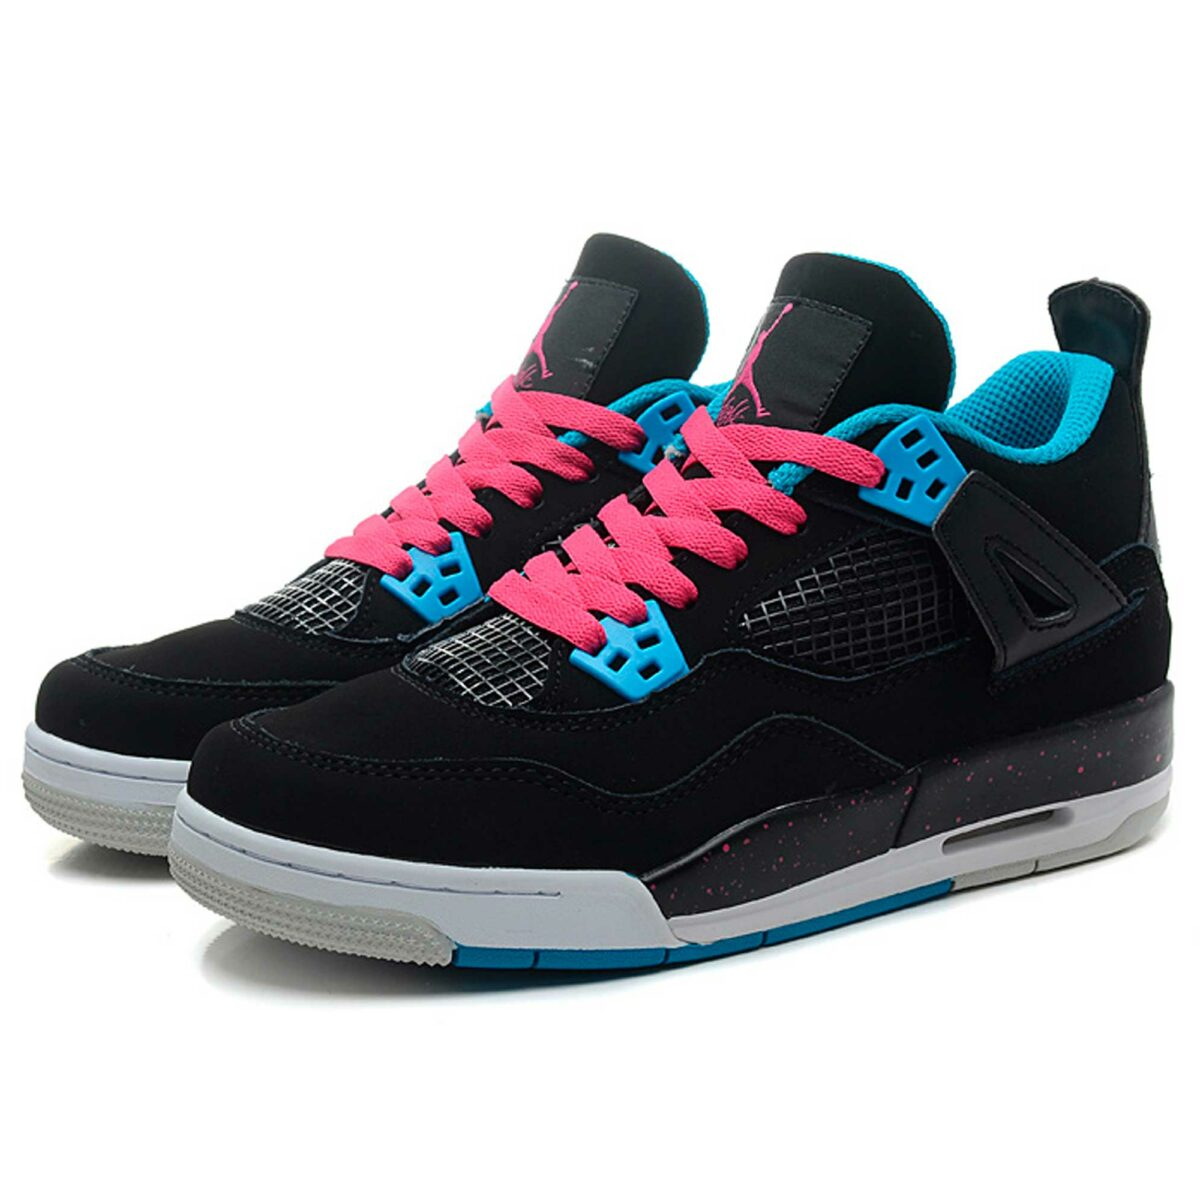 nike air jordan 4 retro black dynamic blue pink 487724-019 купить